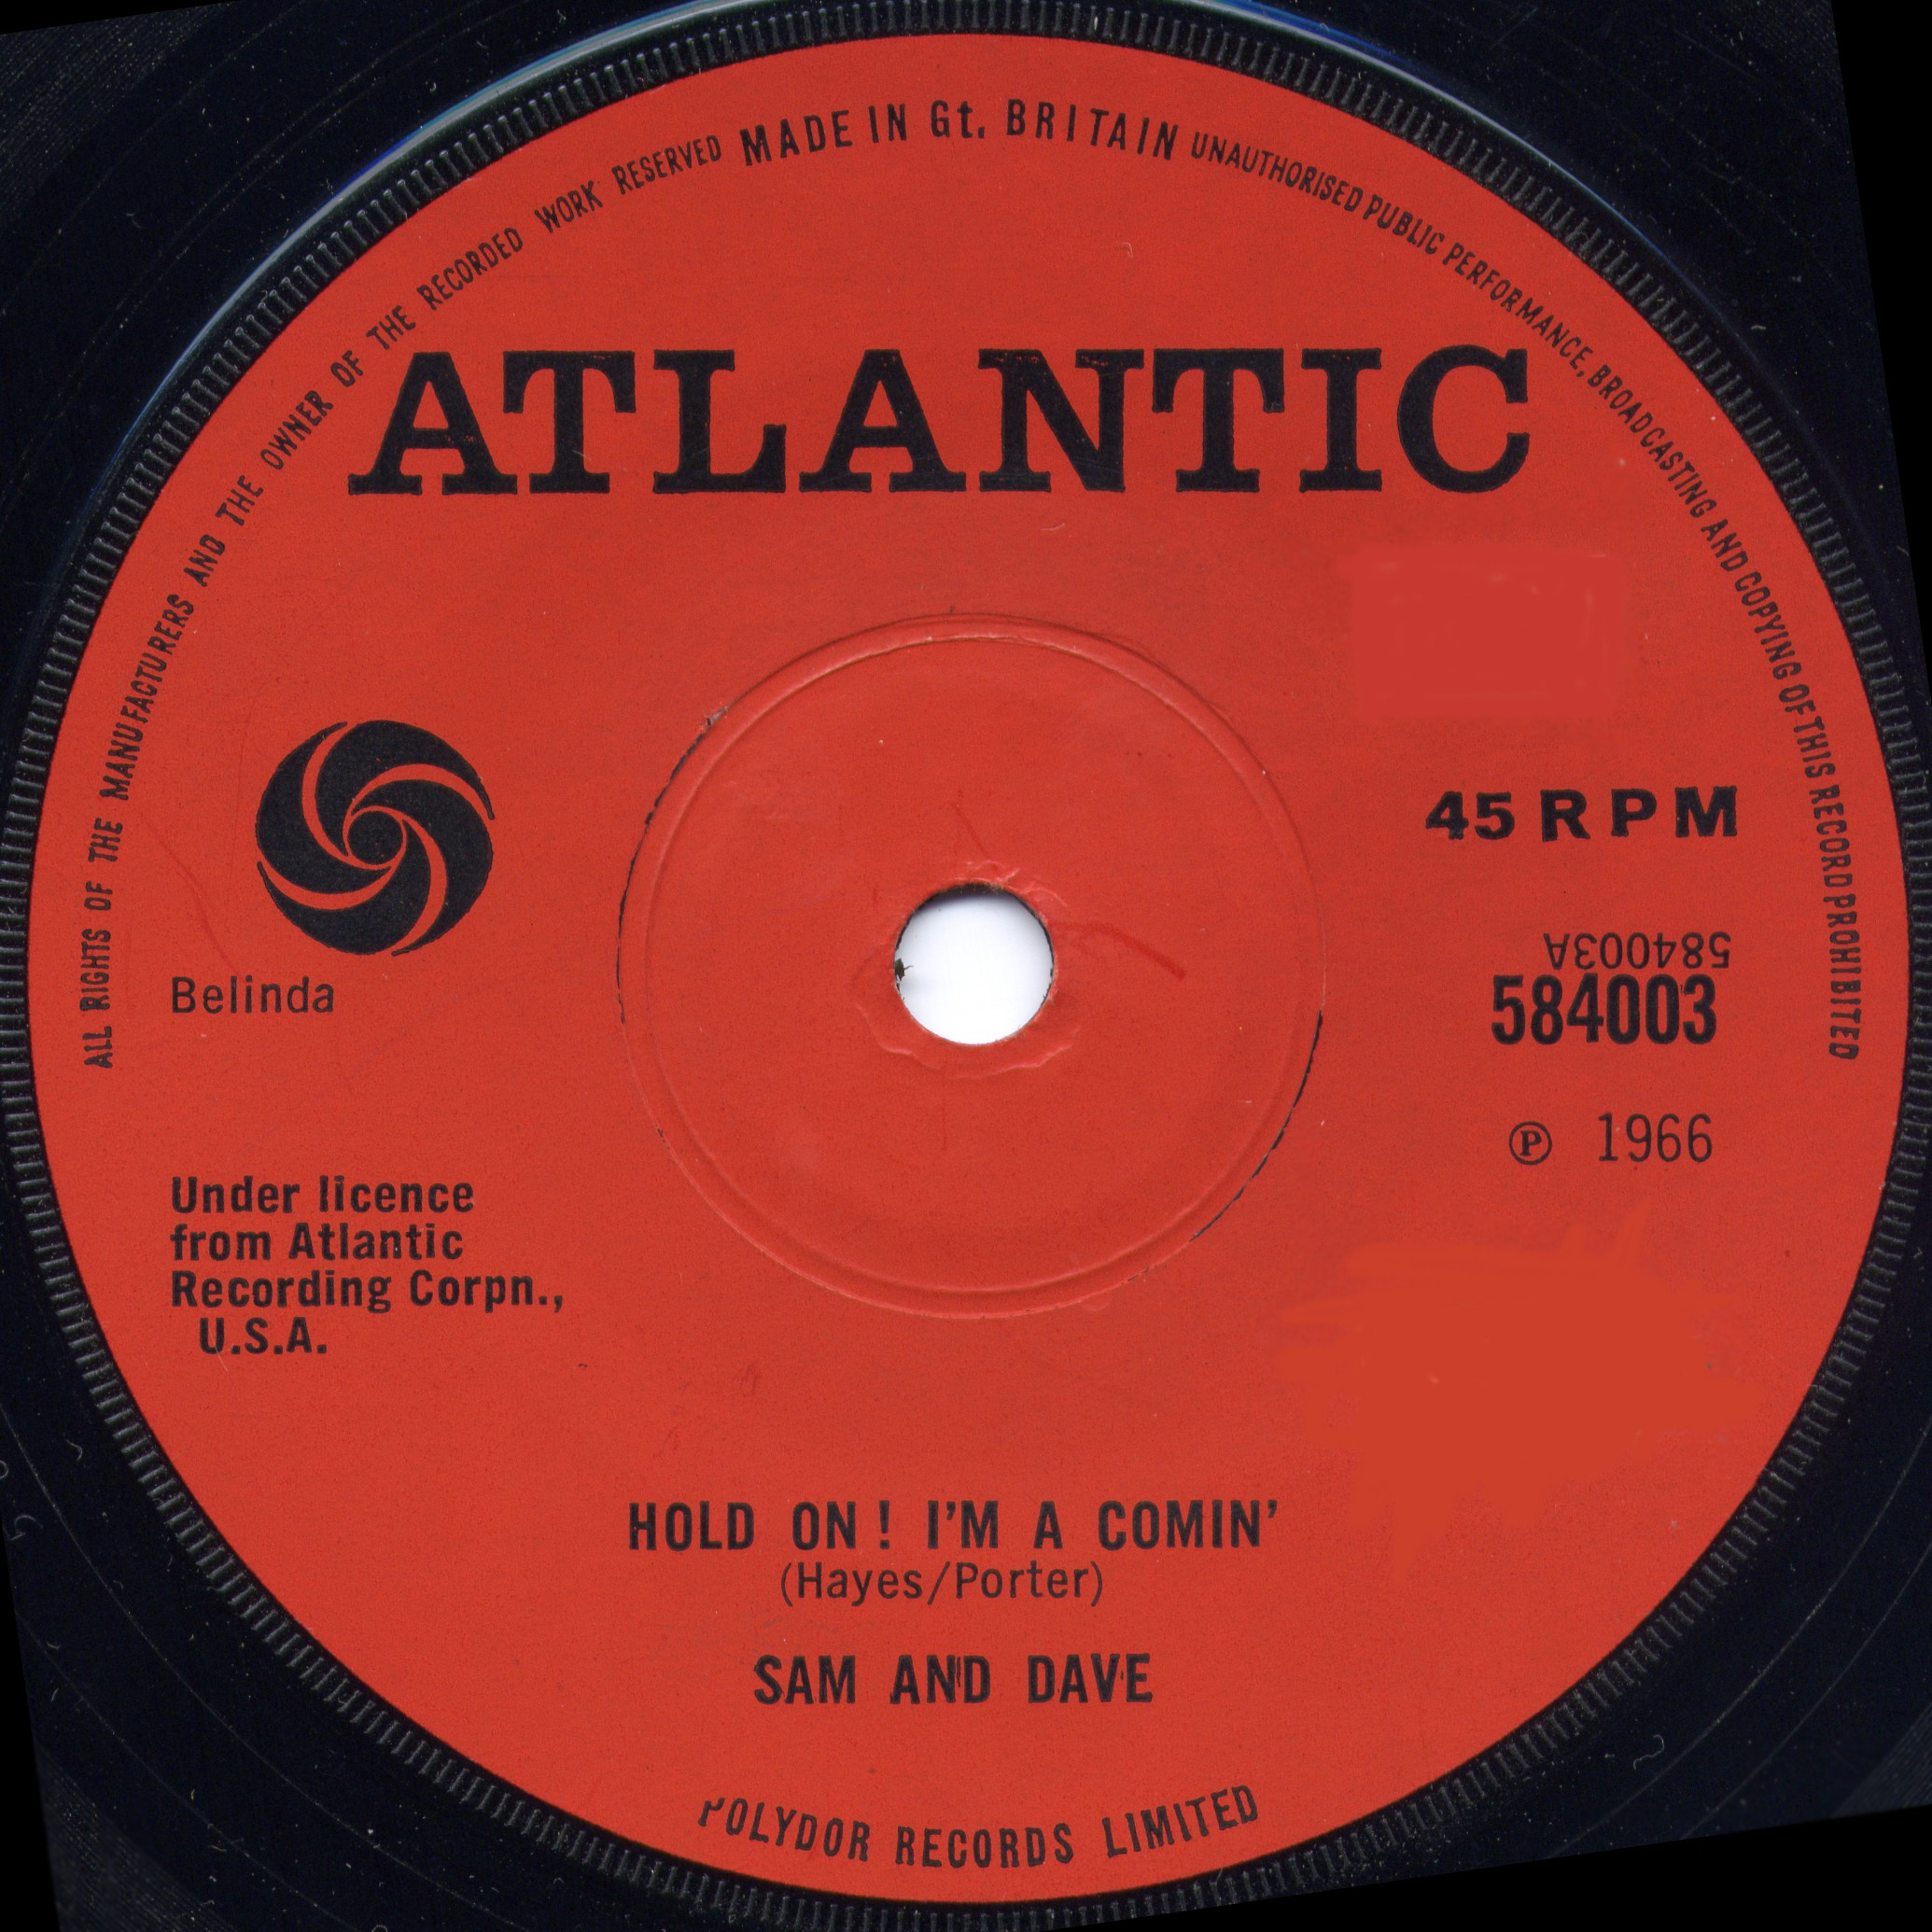 I Want To Cuddle With You Quotes: UK Stax Singles On The Red Atlantic Label